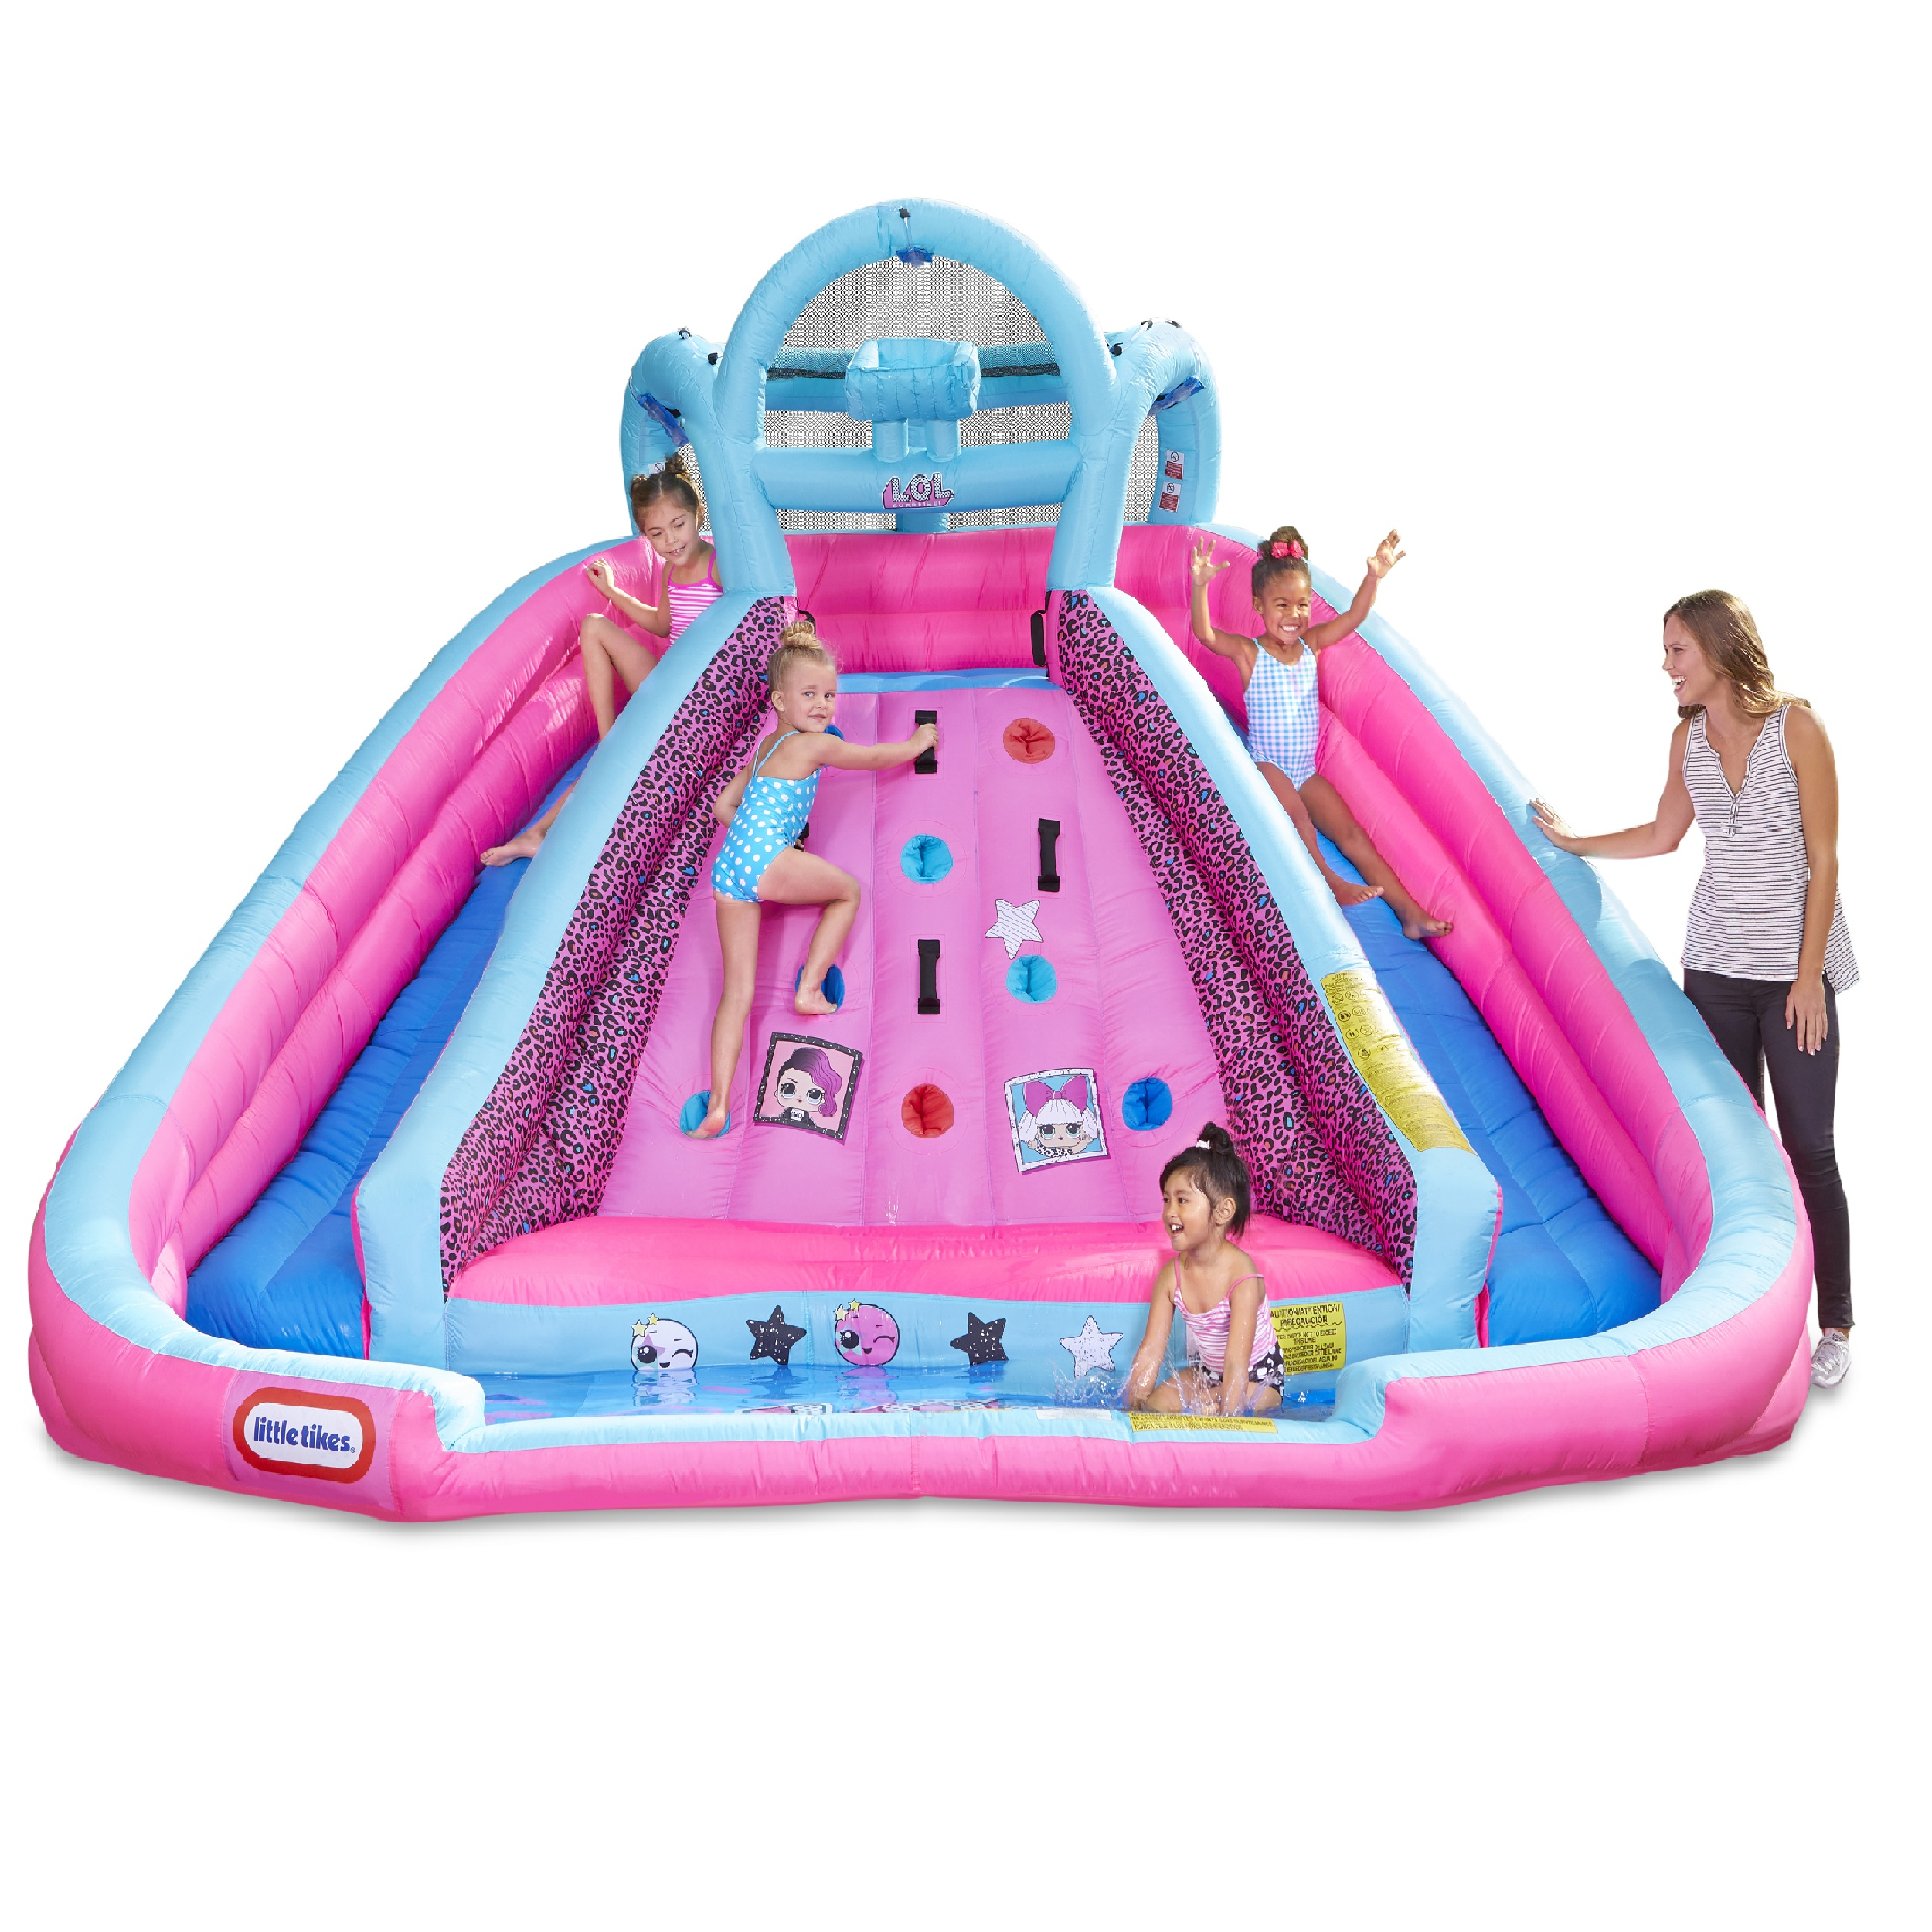 L.O.L. Surprise! Inflatable River Race Water Slide with Blower